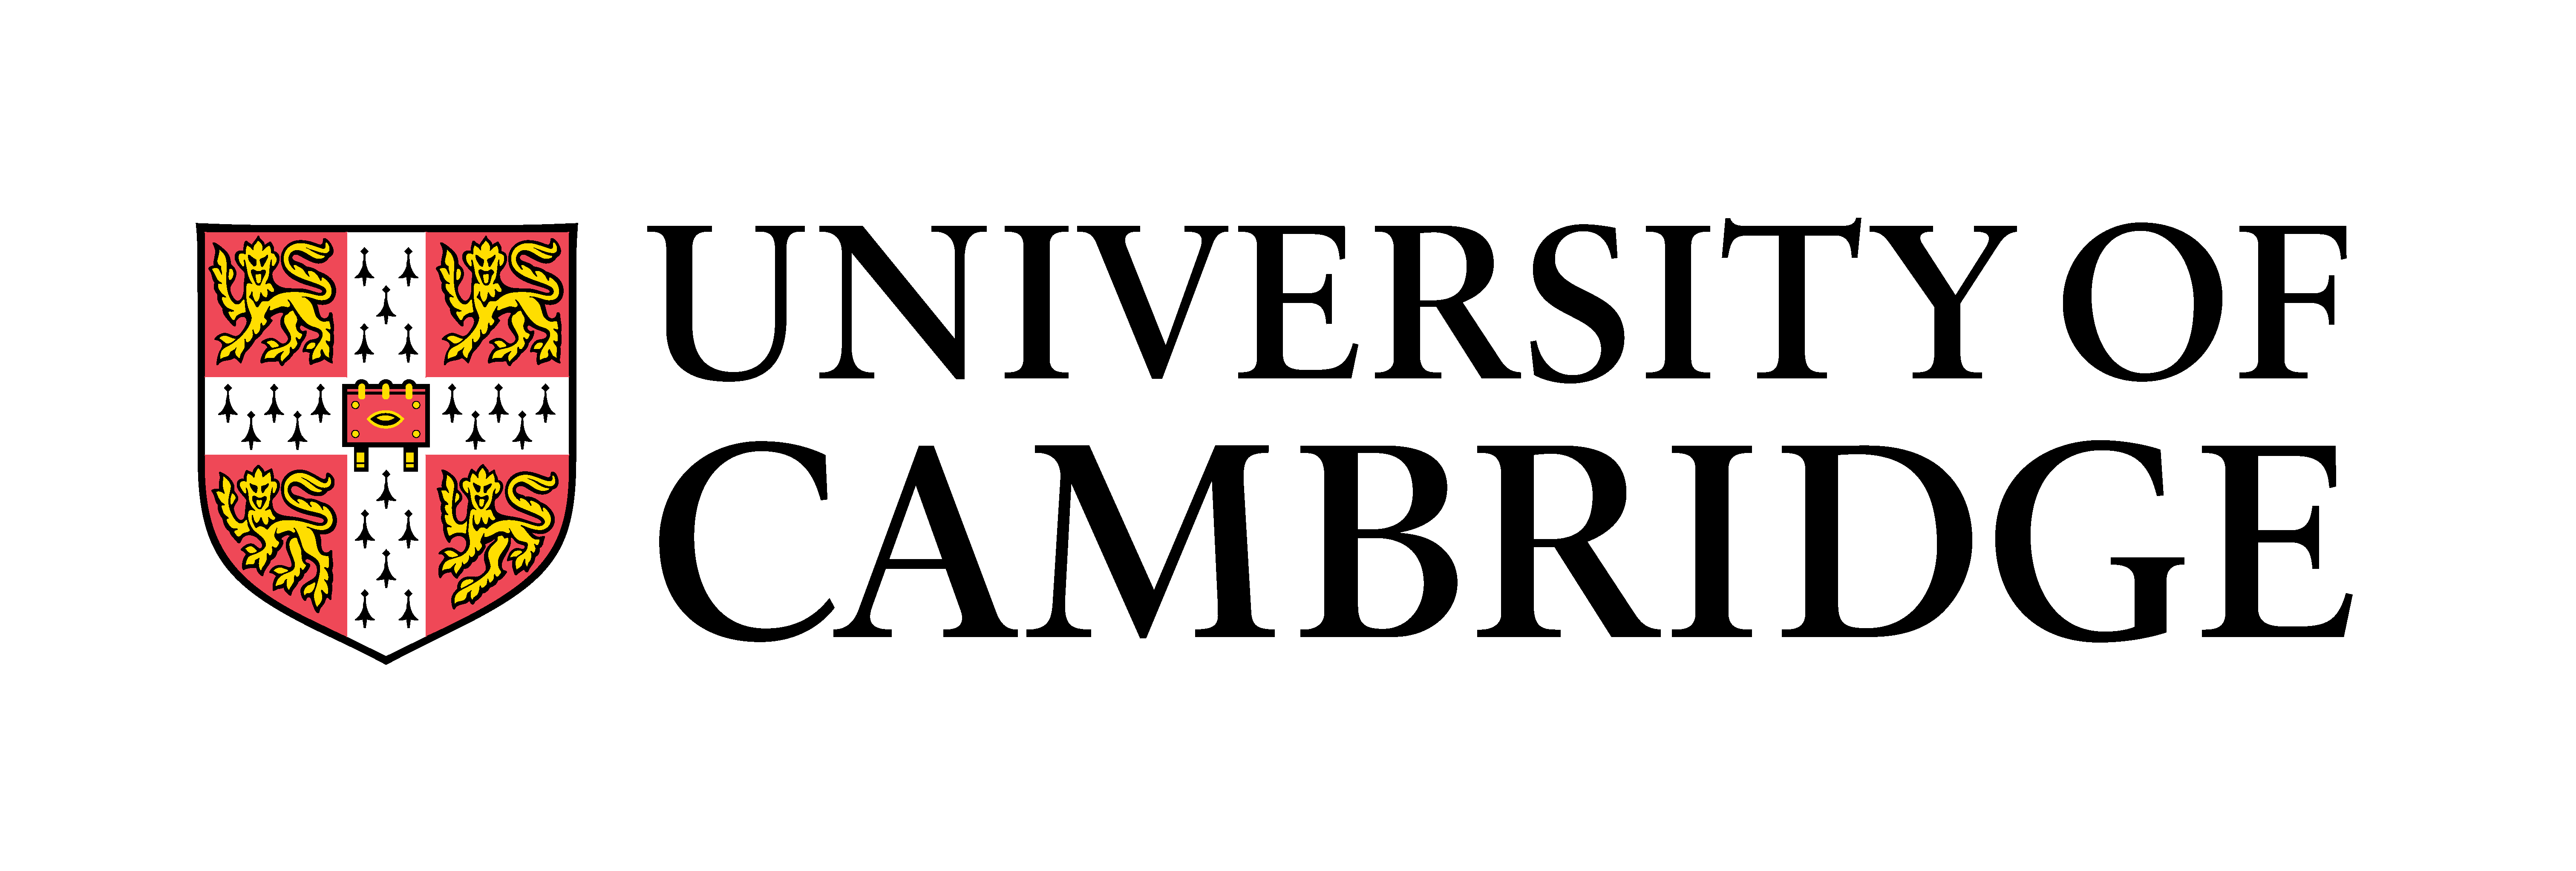 university-of-cambridge-logo-2